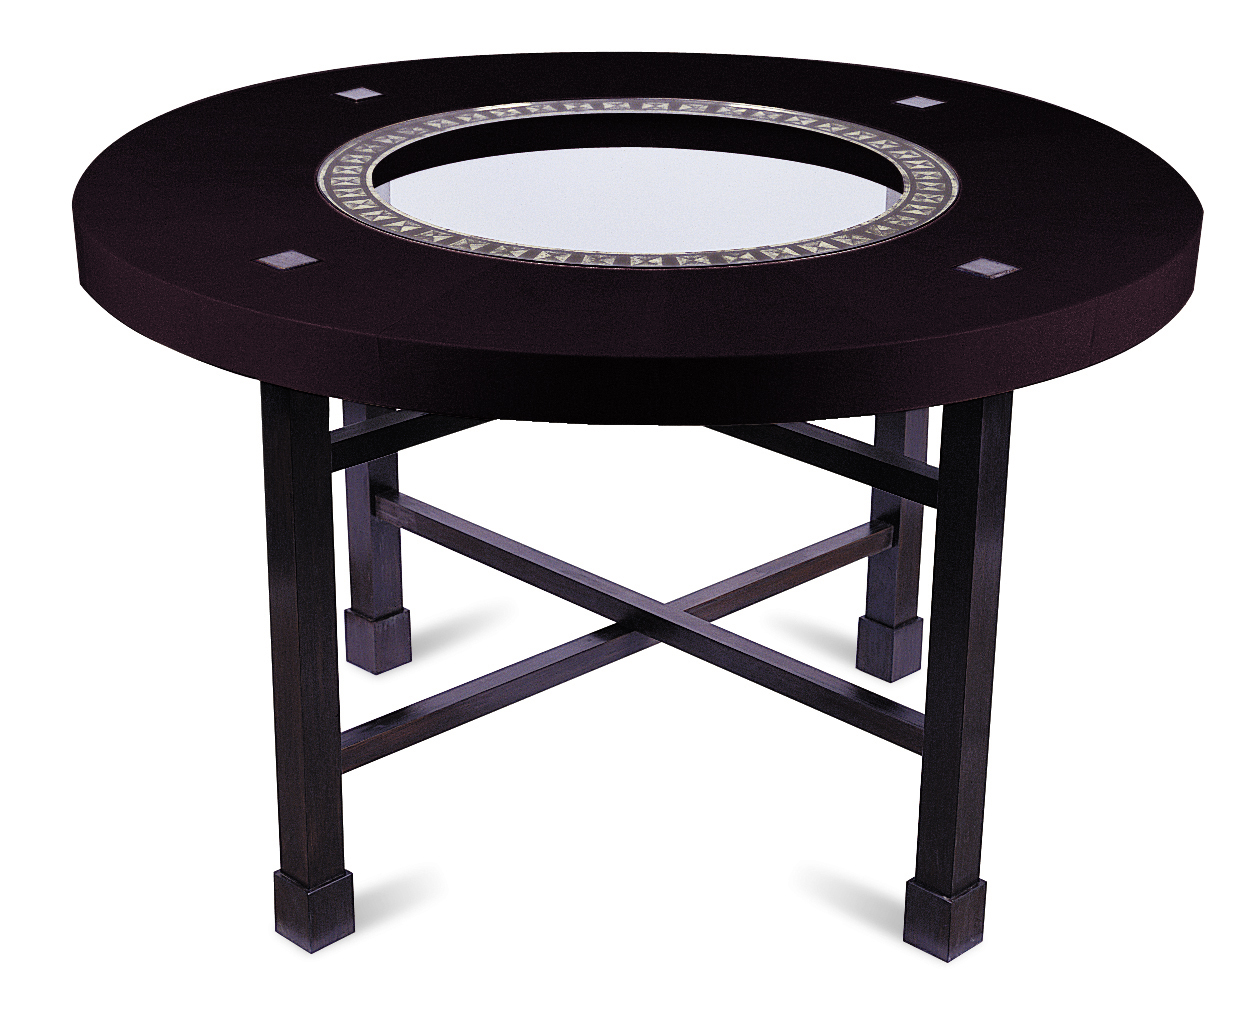 3020L+Leather+&+Eglomise+Dining+Table.JPG